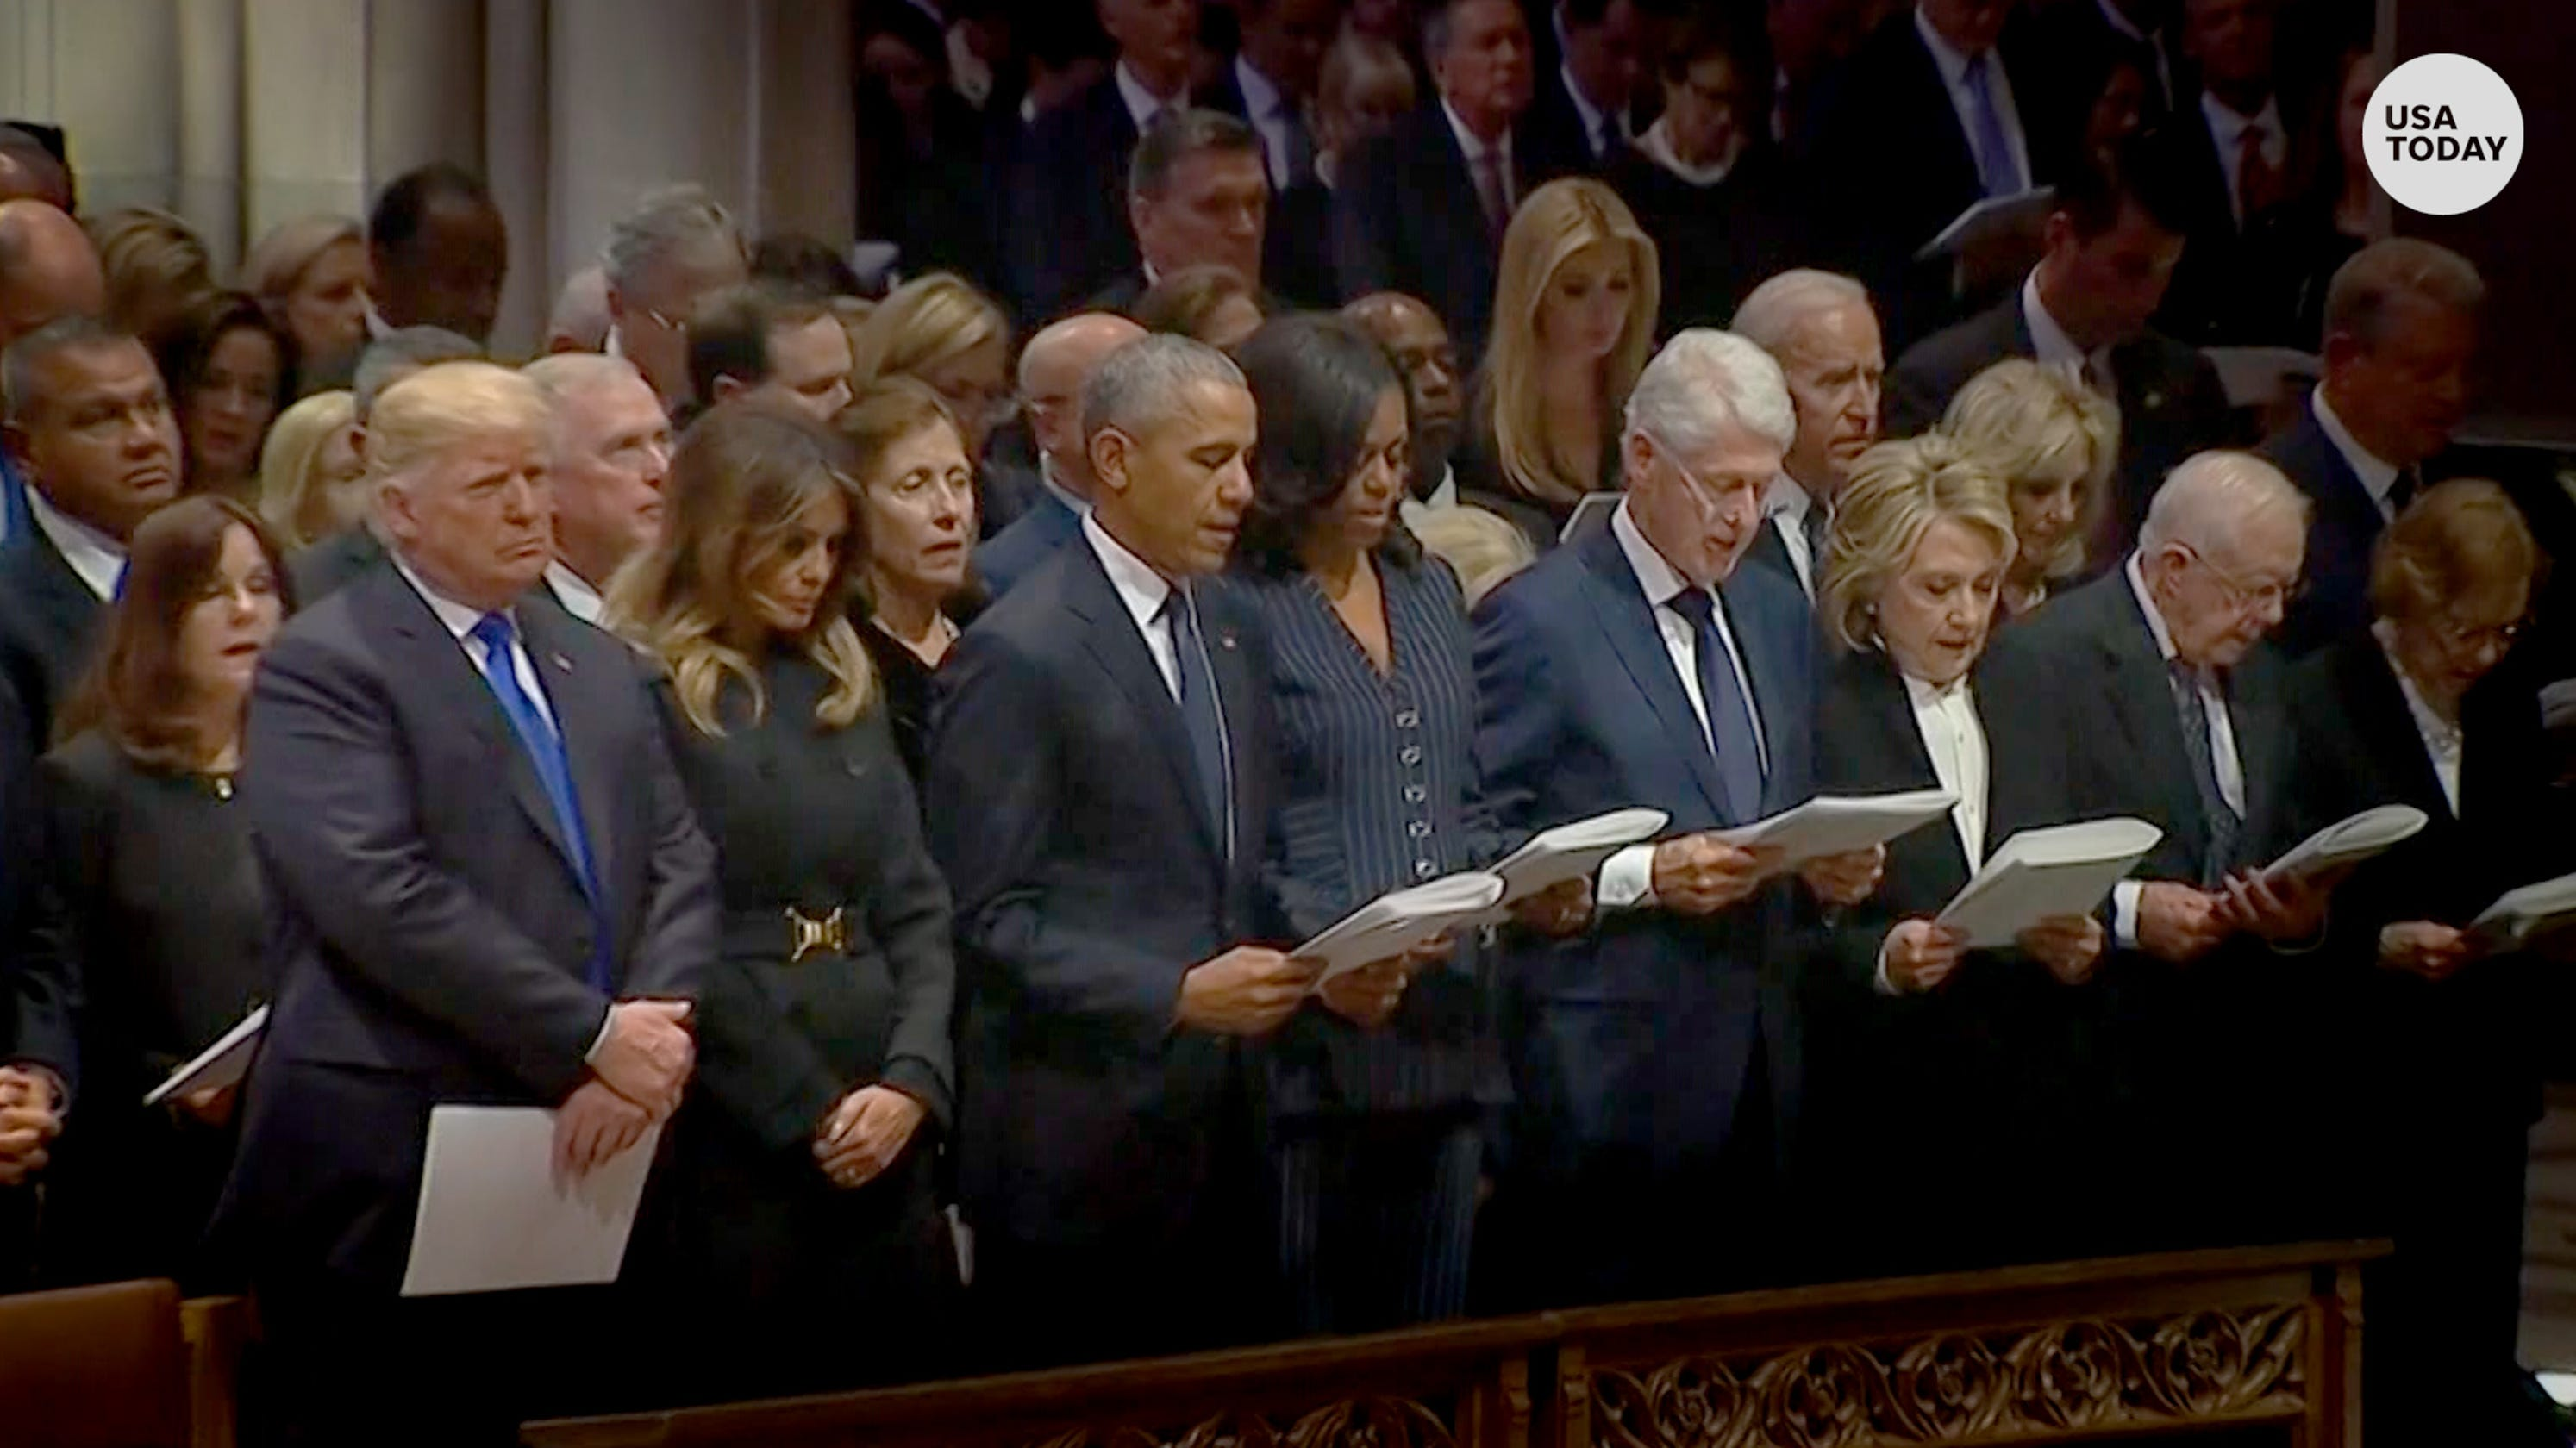 Did Hillary rudely snub Donald at 41's funeral?